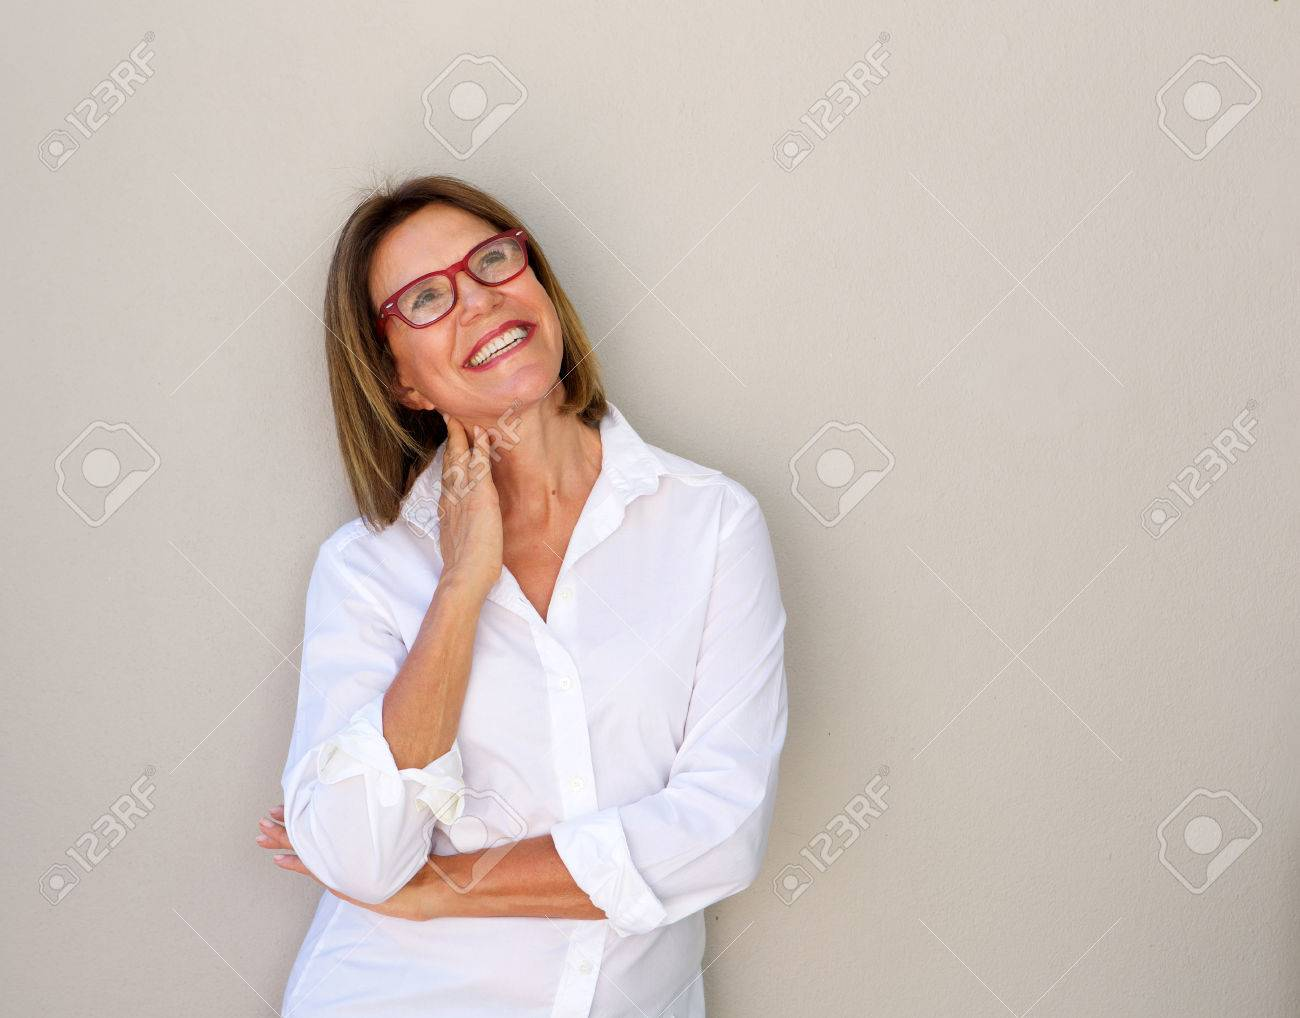 Portrait of smiling business woman with glasses looking up - 72409731